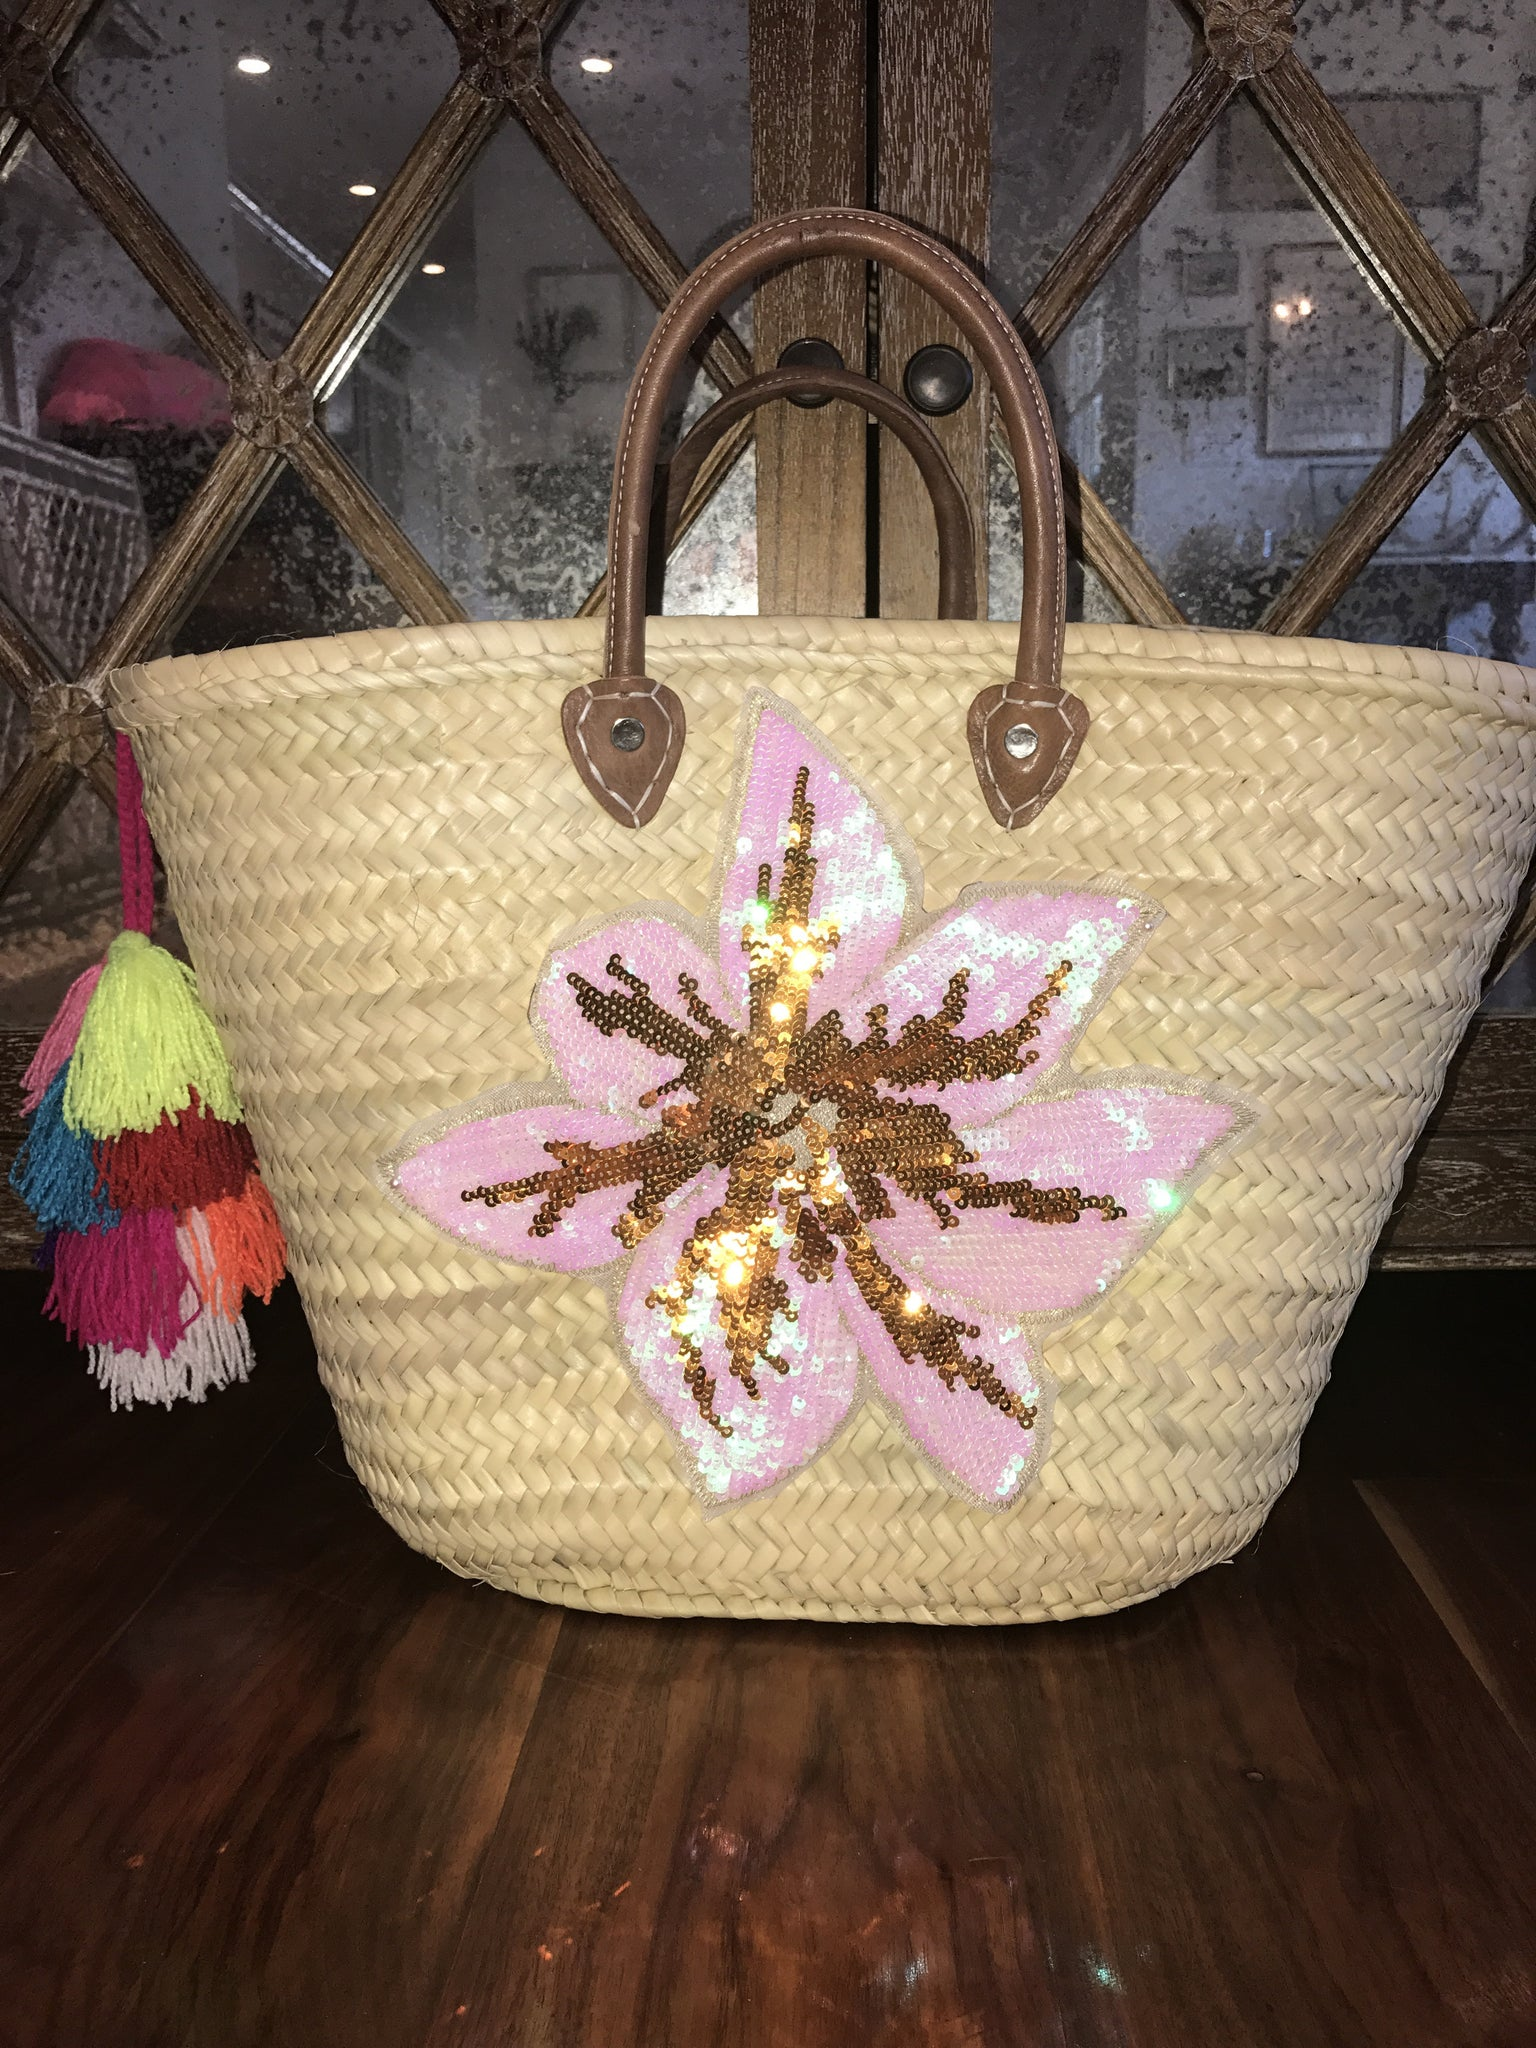 The Orchid Bag